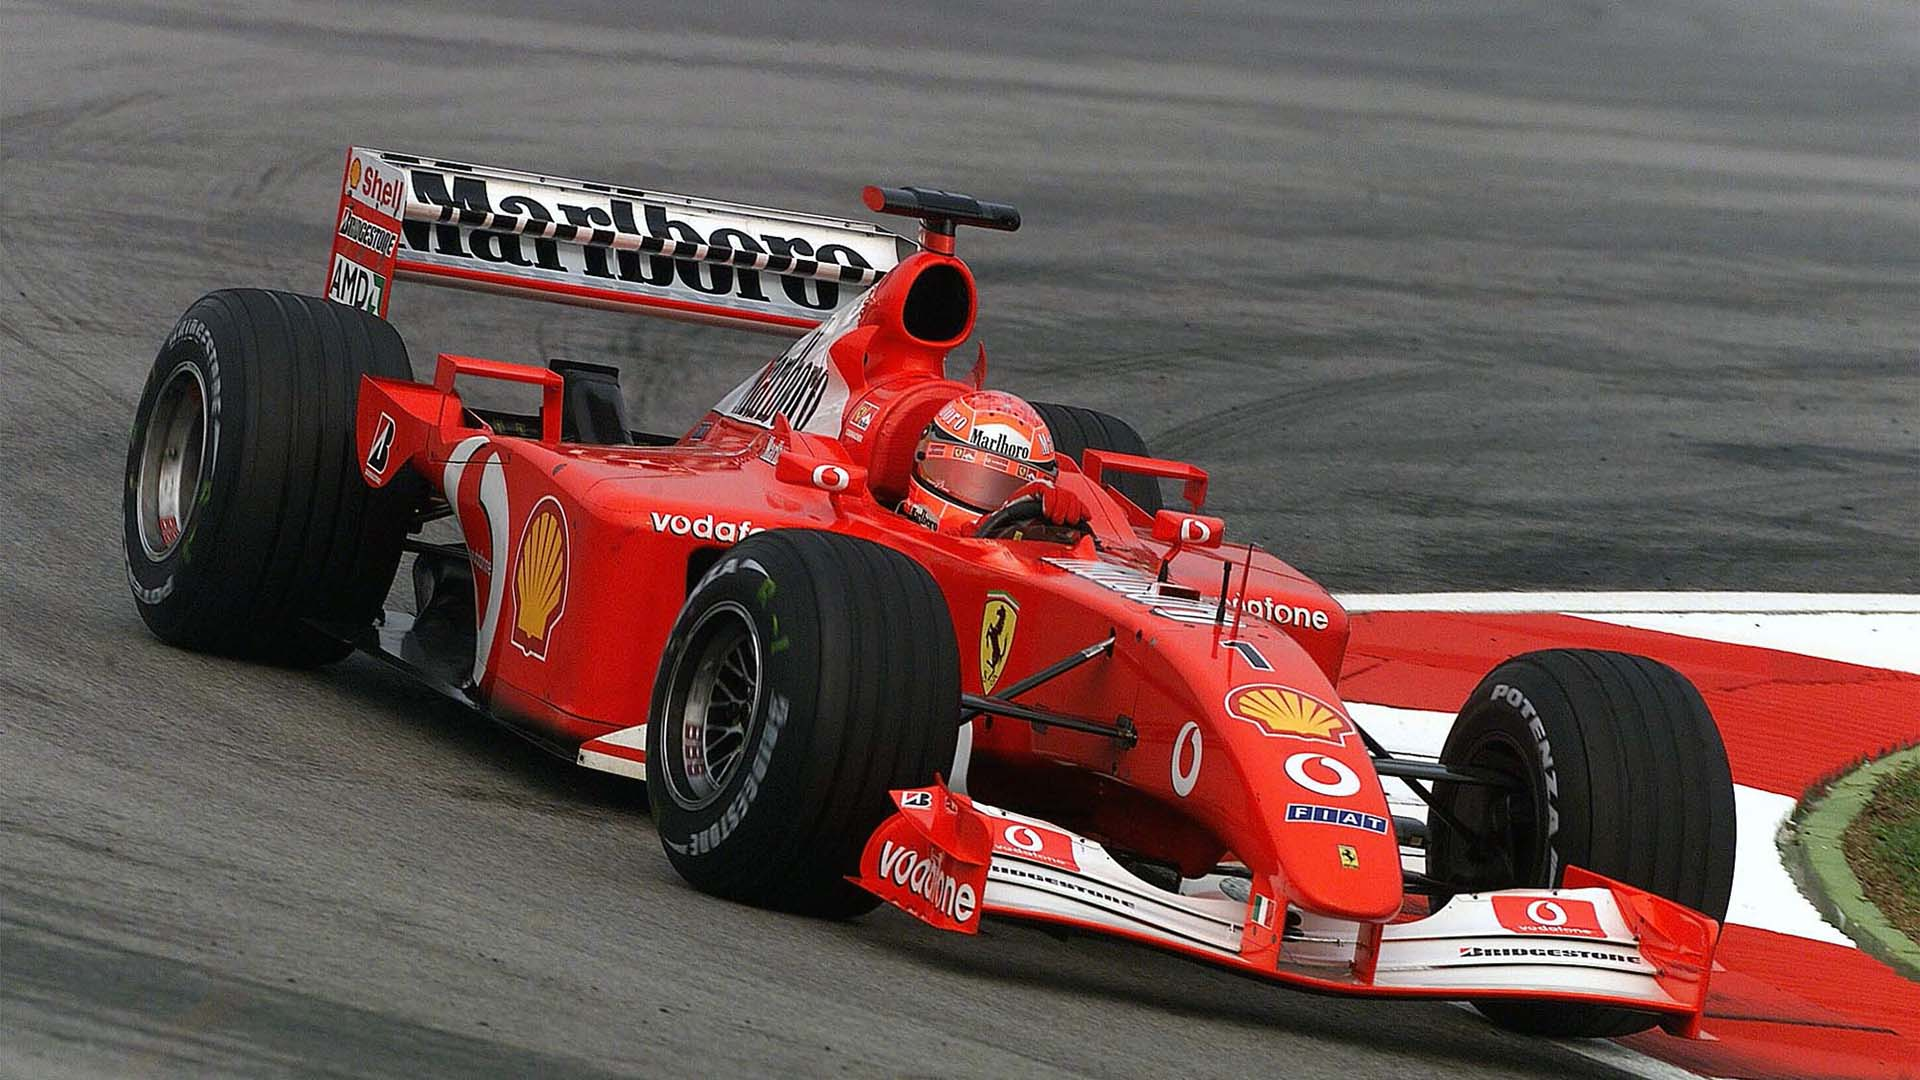 ferrari f2001 michael schumacher - photo #30